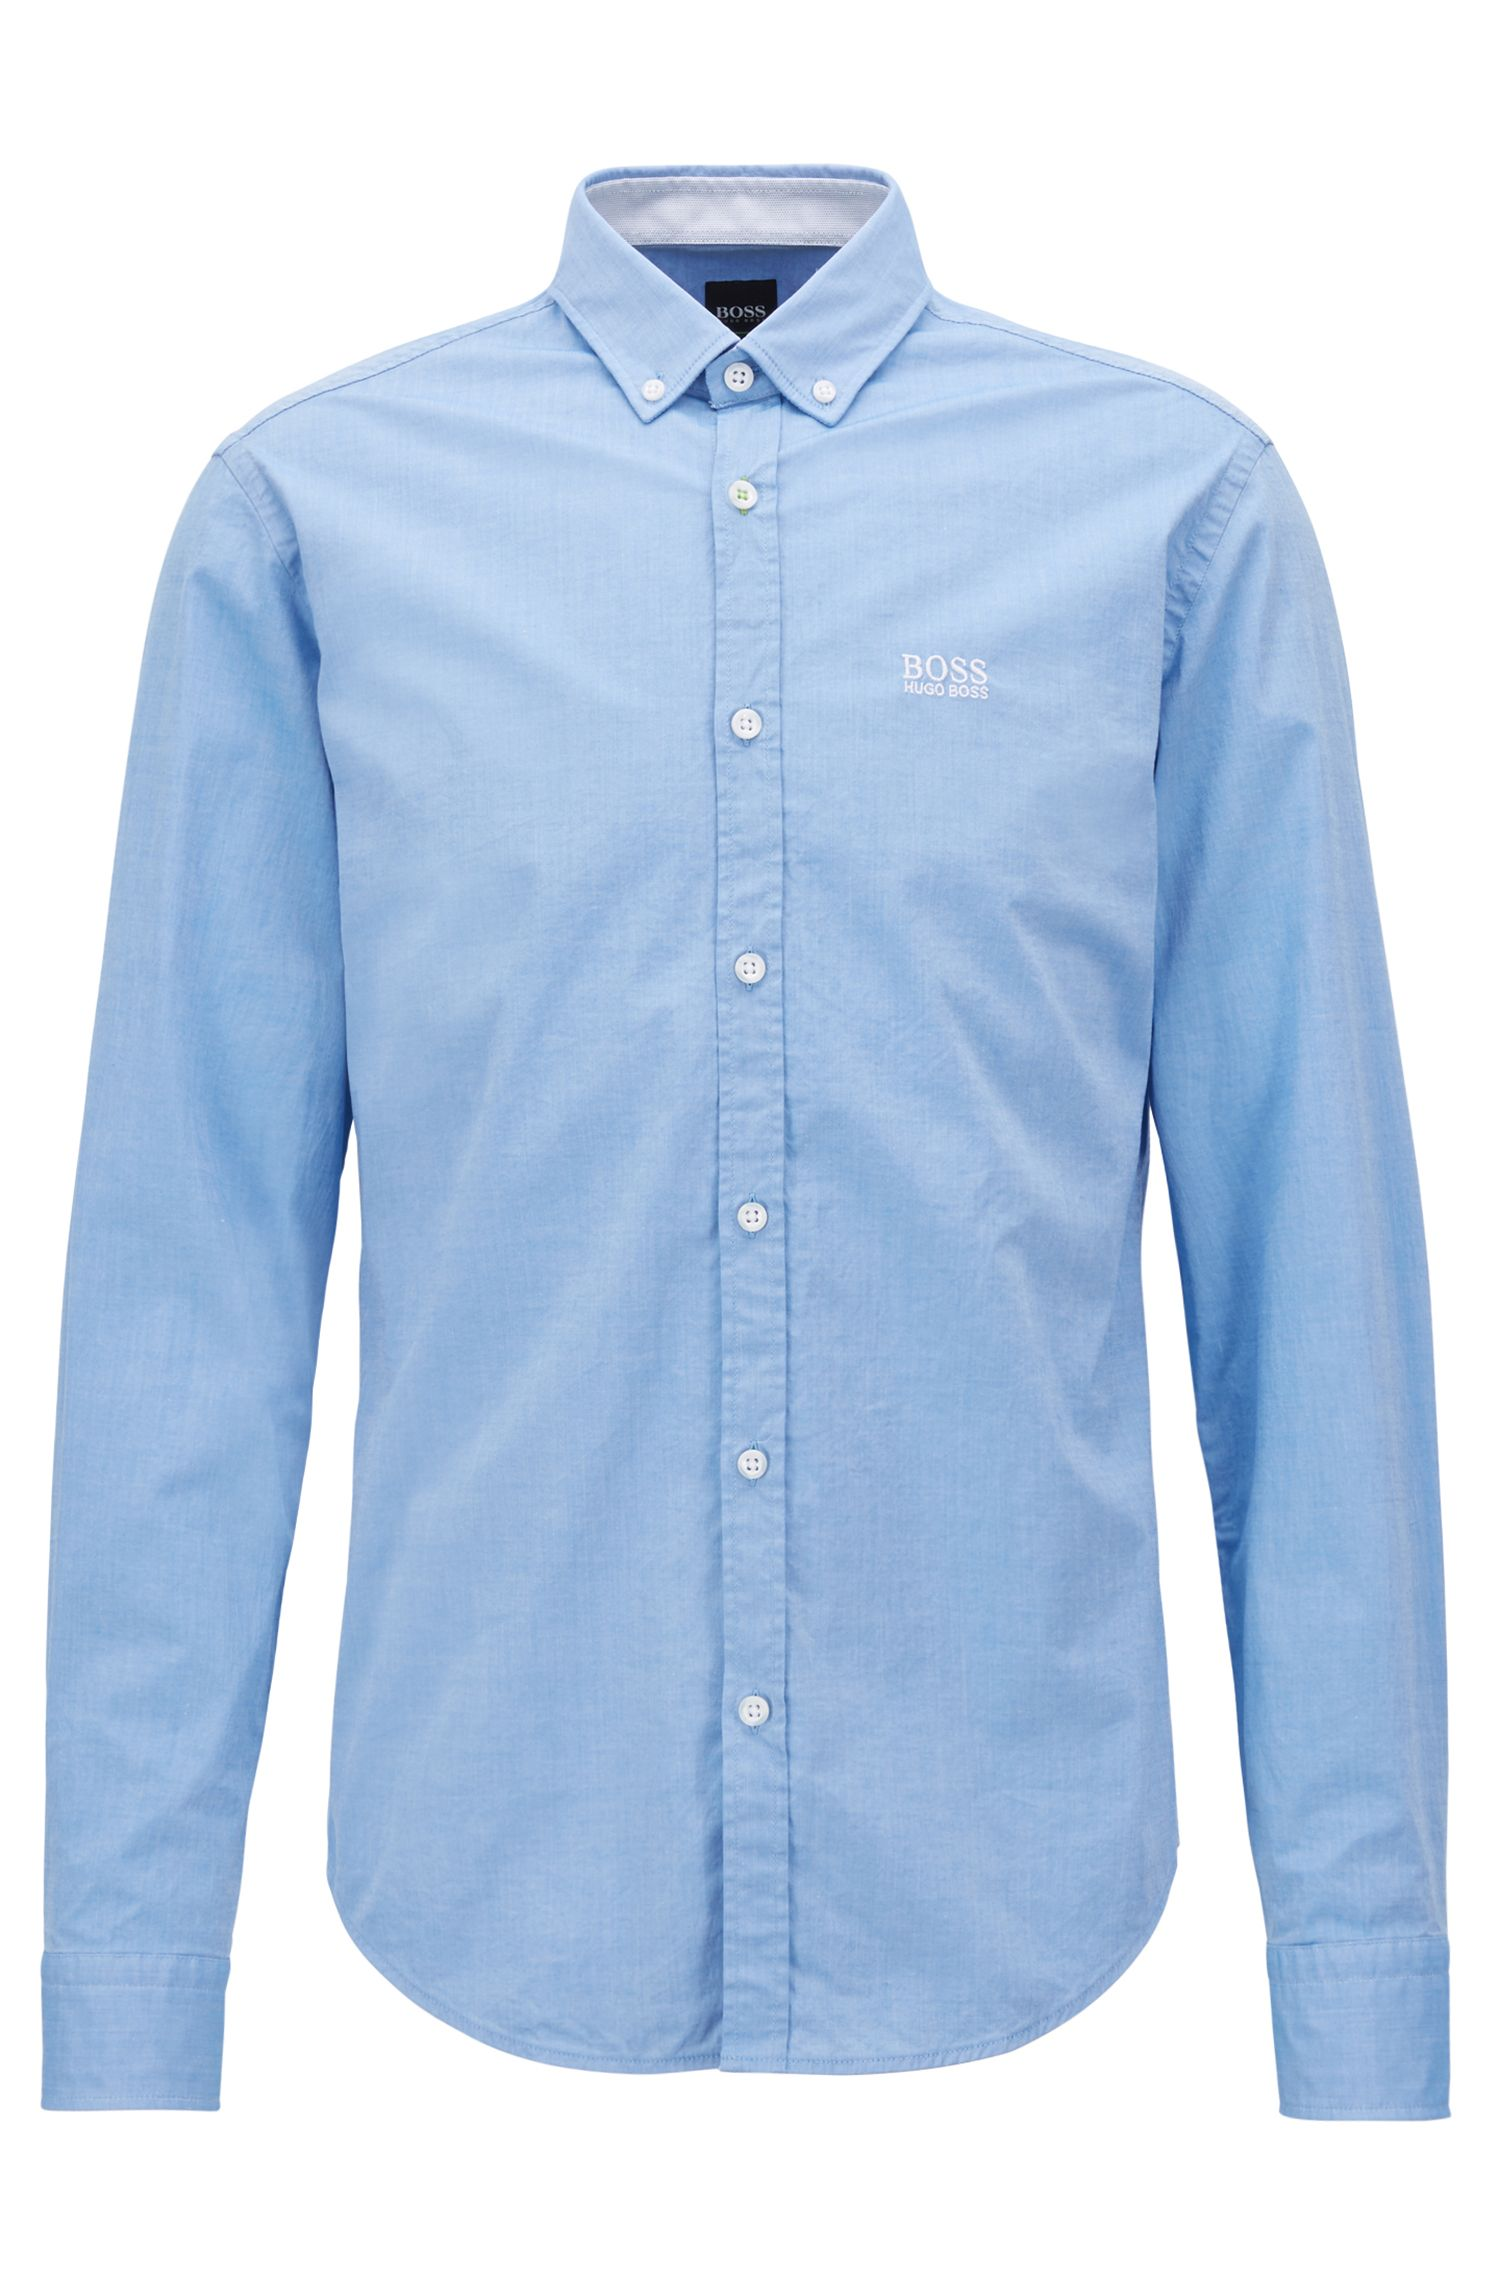 Regular-Fit Hemd aus Stretch-Baumwolle mit Button-Down-Kragen, Blau